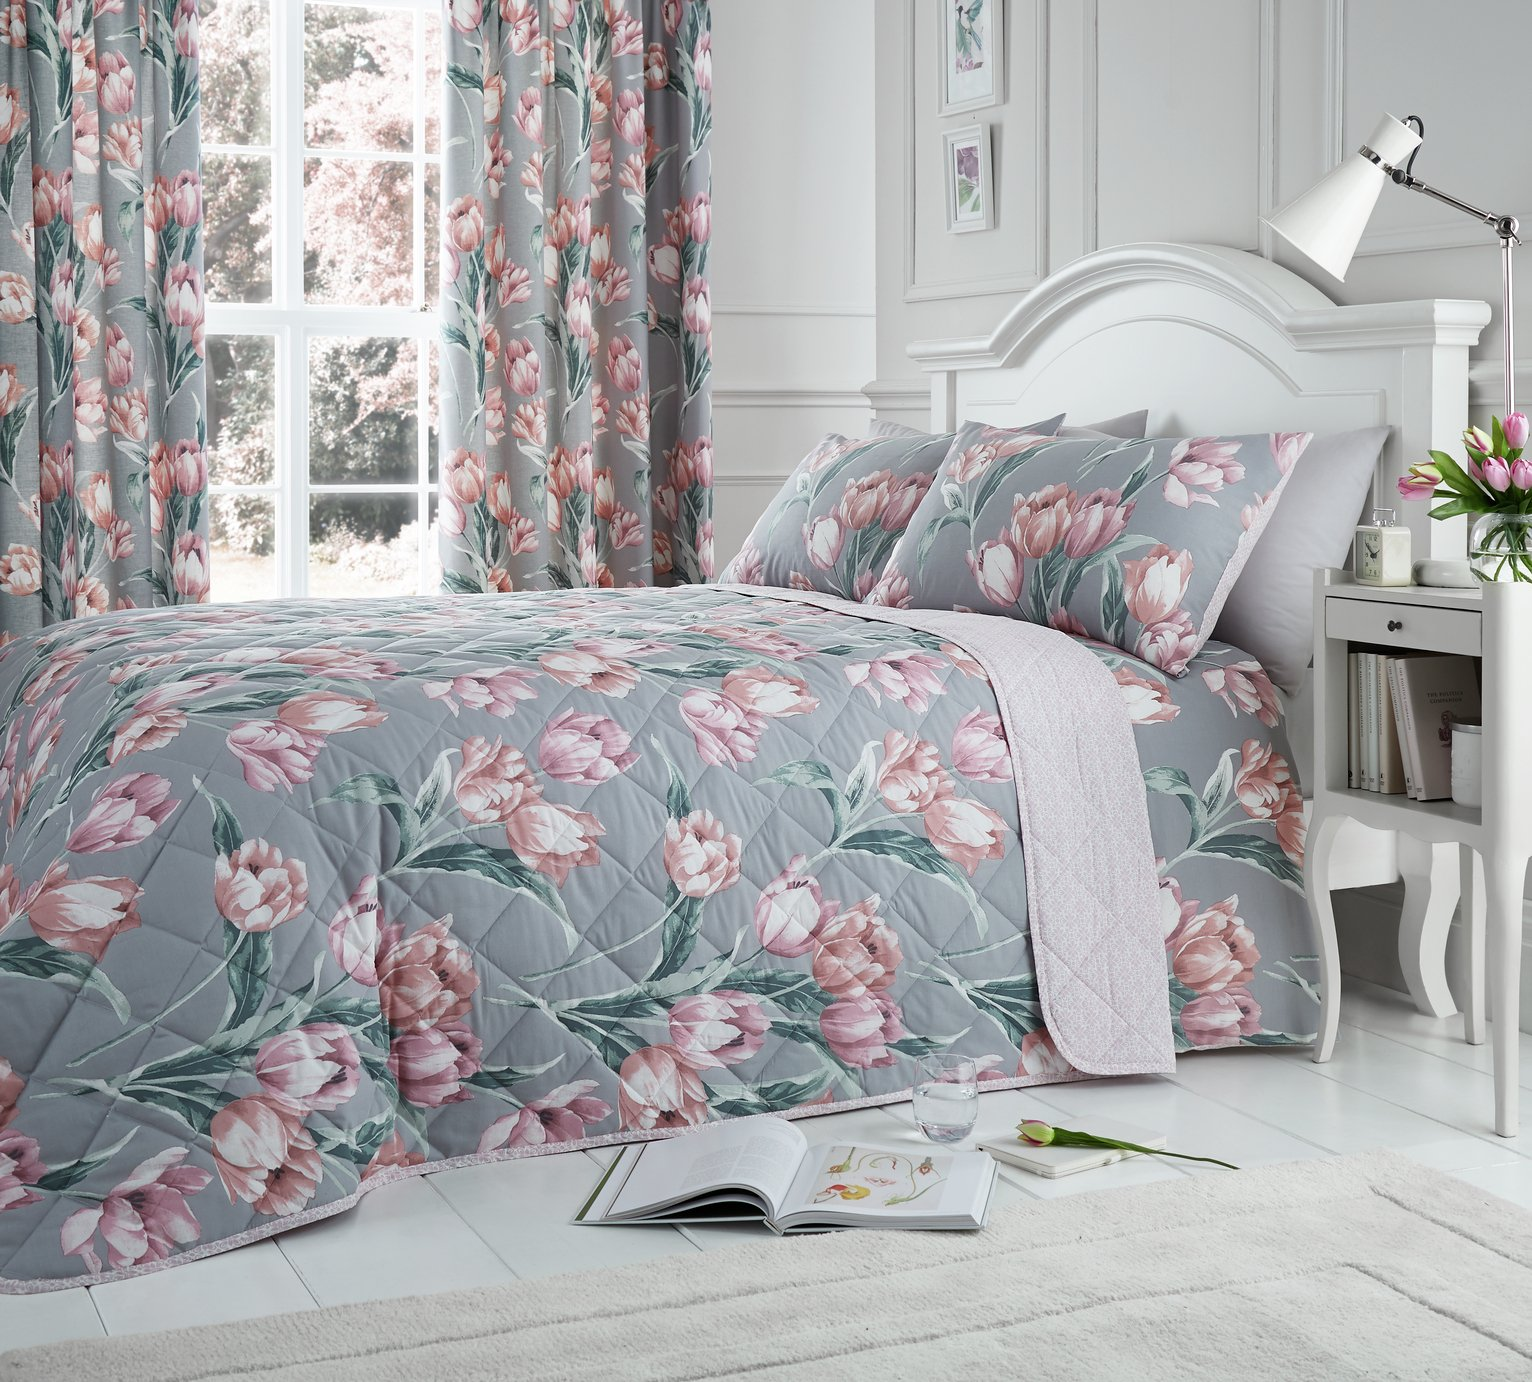 Dreams N Drapes Tulip Blush Bedding Set - Double